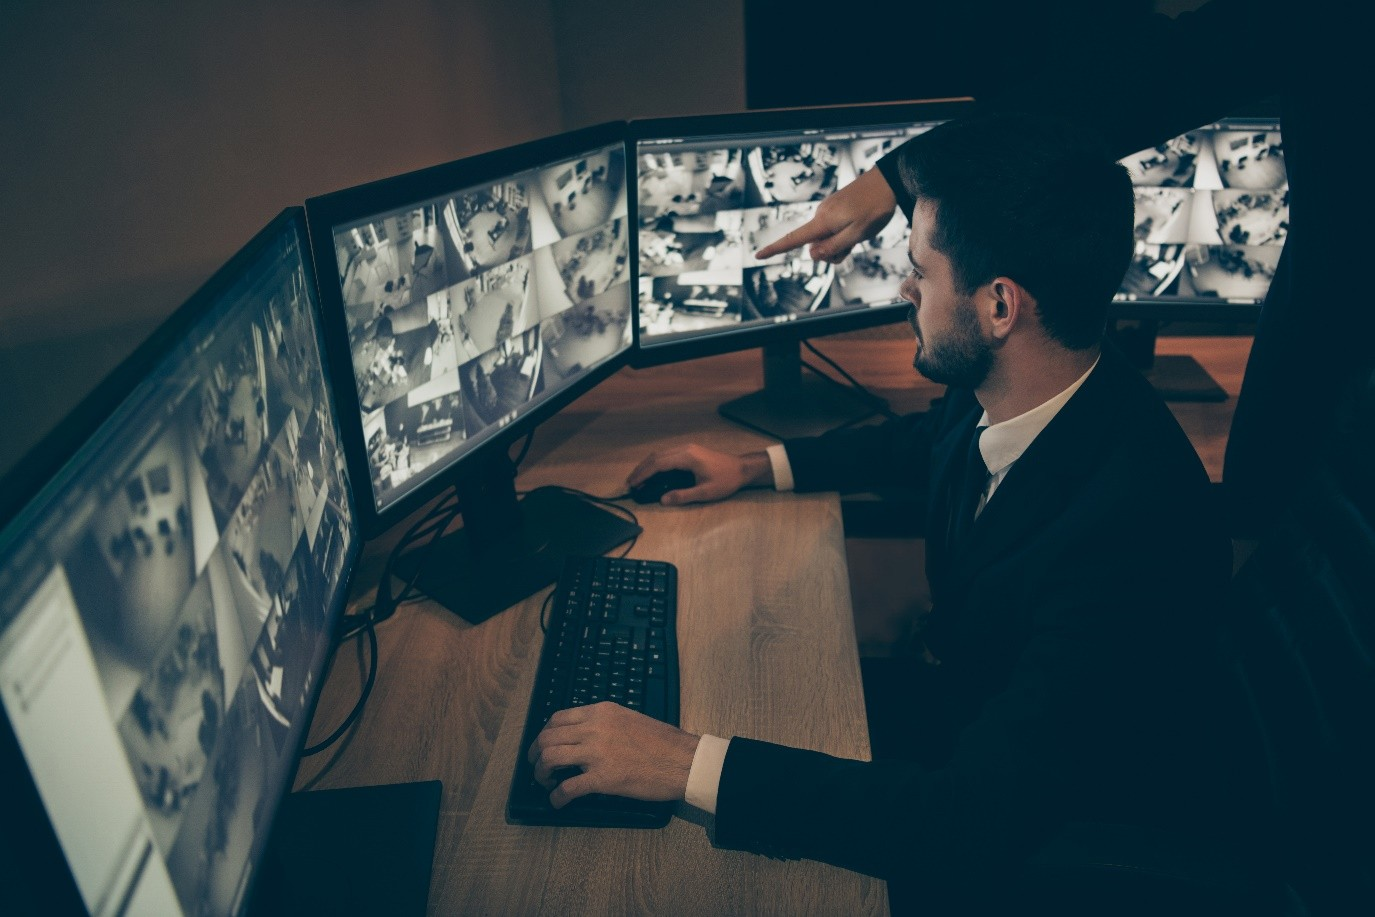 Protection against Liability Lawsuits with TVSE CCTV Solutions